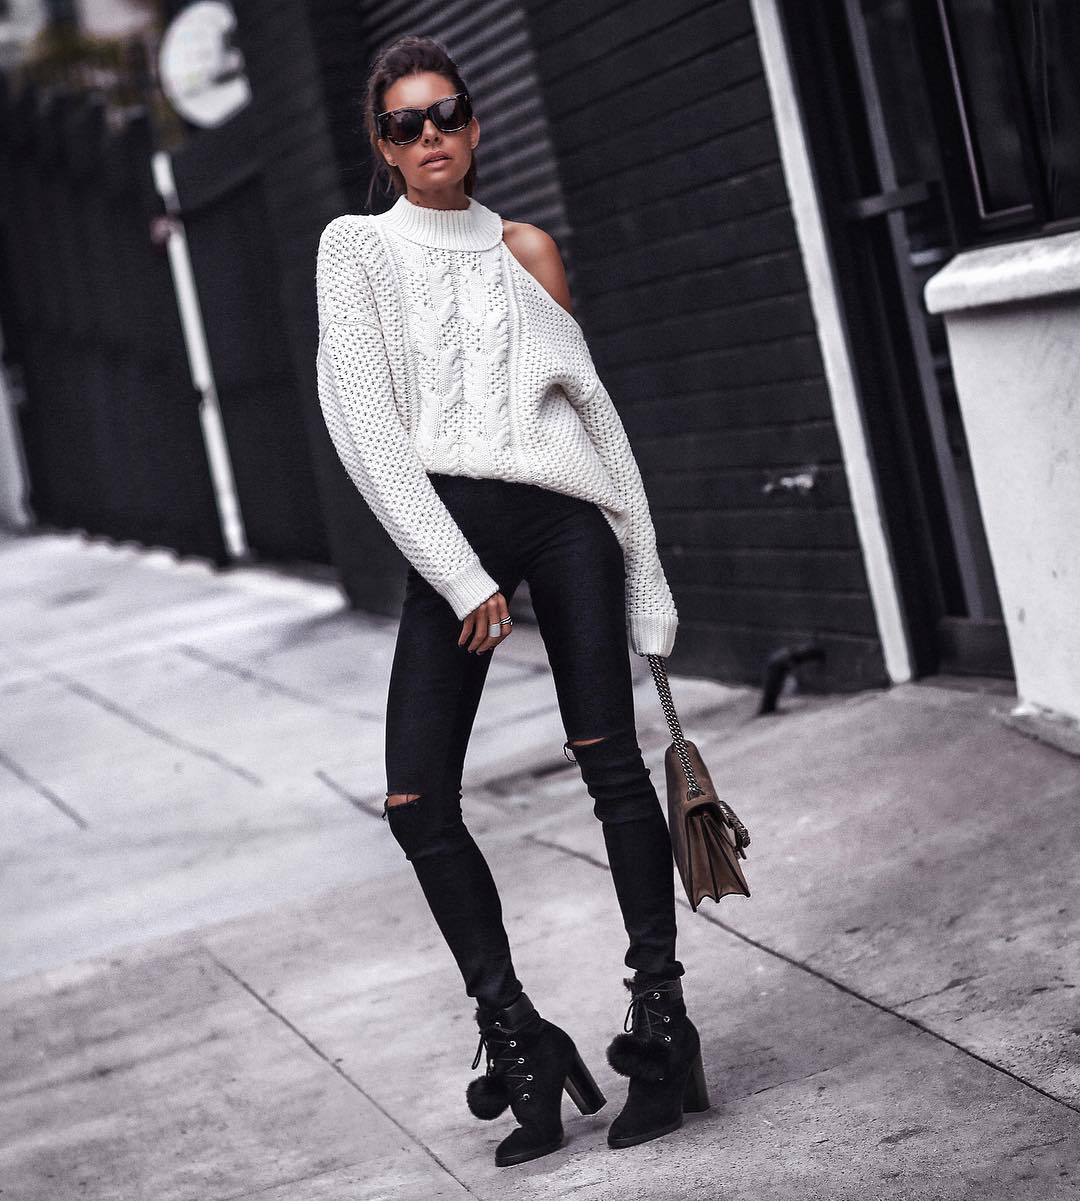 Designer Oversize Sweater With Distressed Jeans And Ankle Shoes